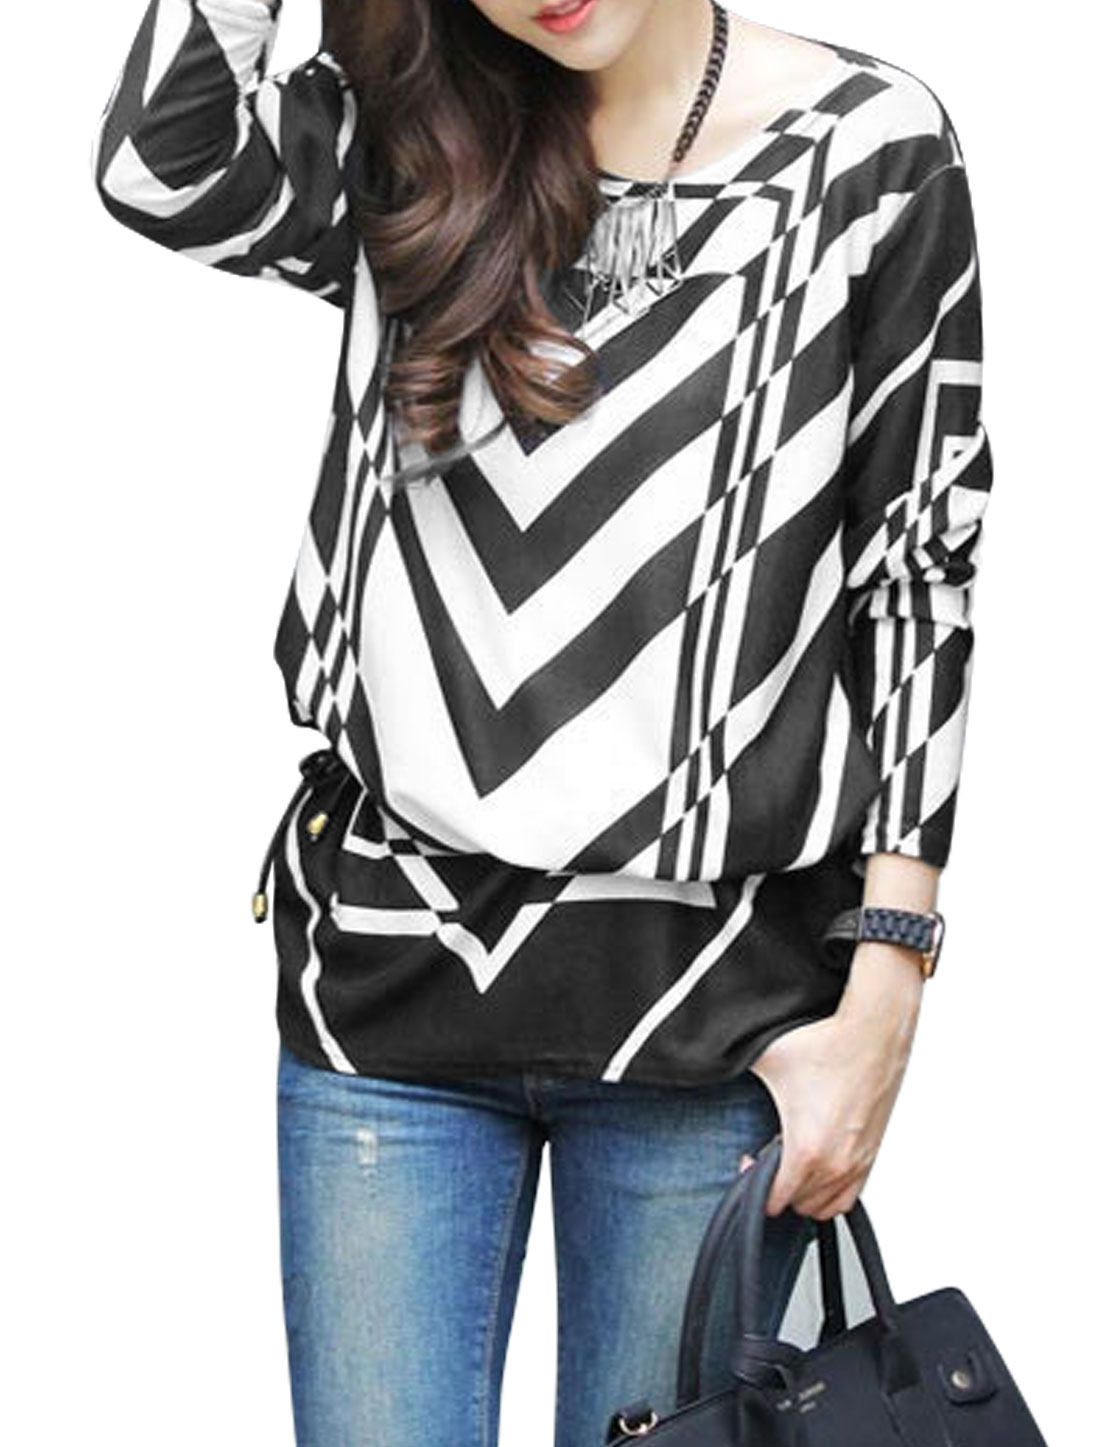 Ladies Black White Geometric Prints Pullover Waist String Tunic Knit Shirt S